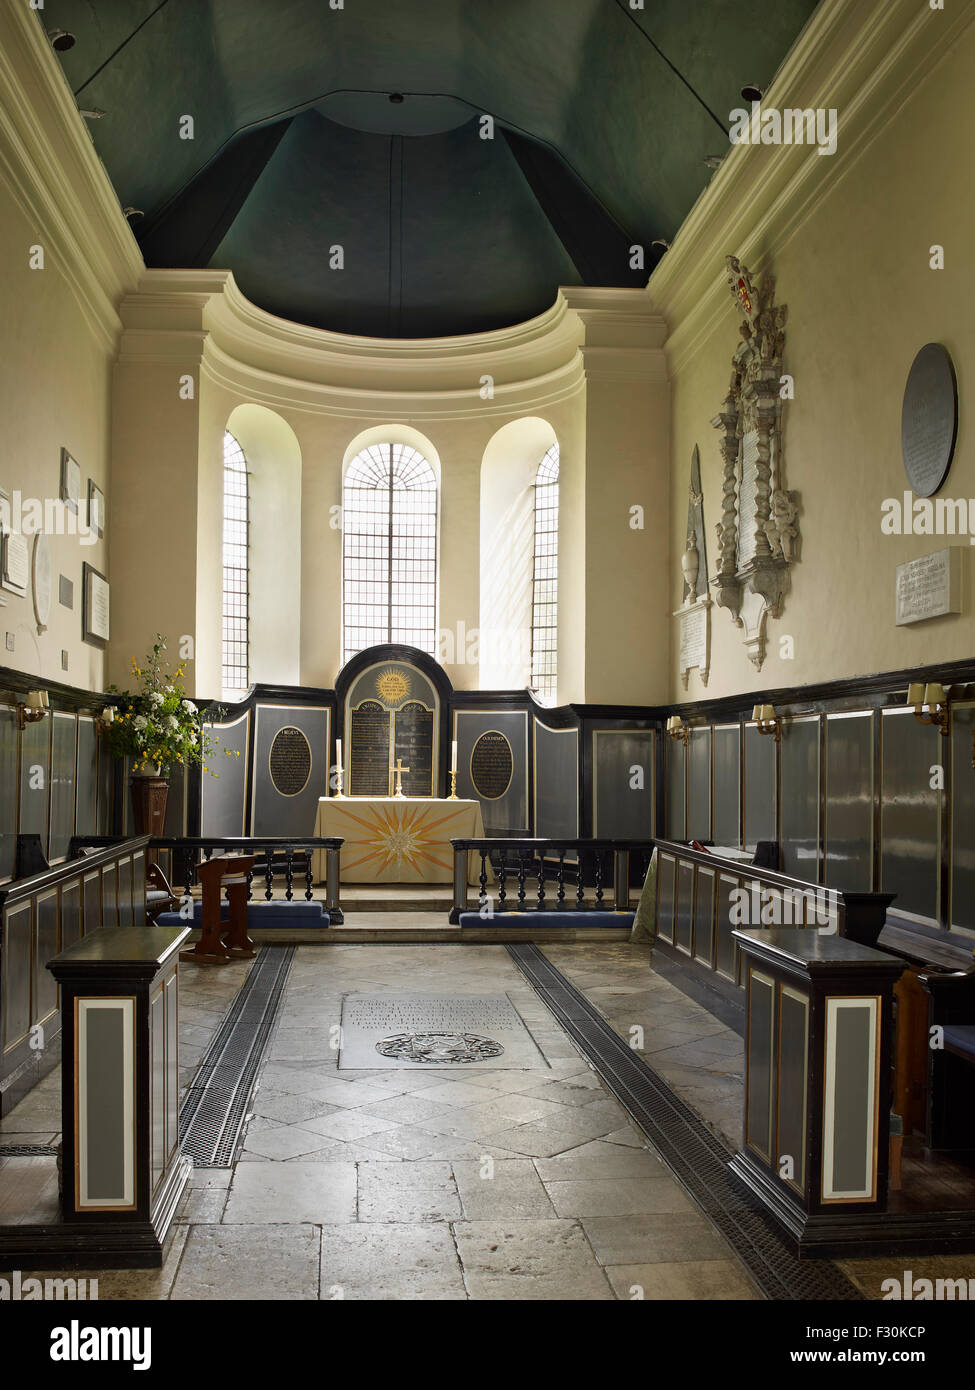 Wye, Church of St Gregory and St Martin, Kent. Chancel interior - Stock Image